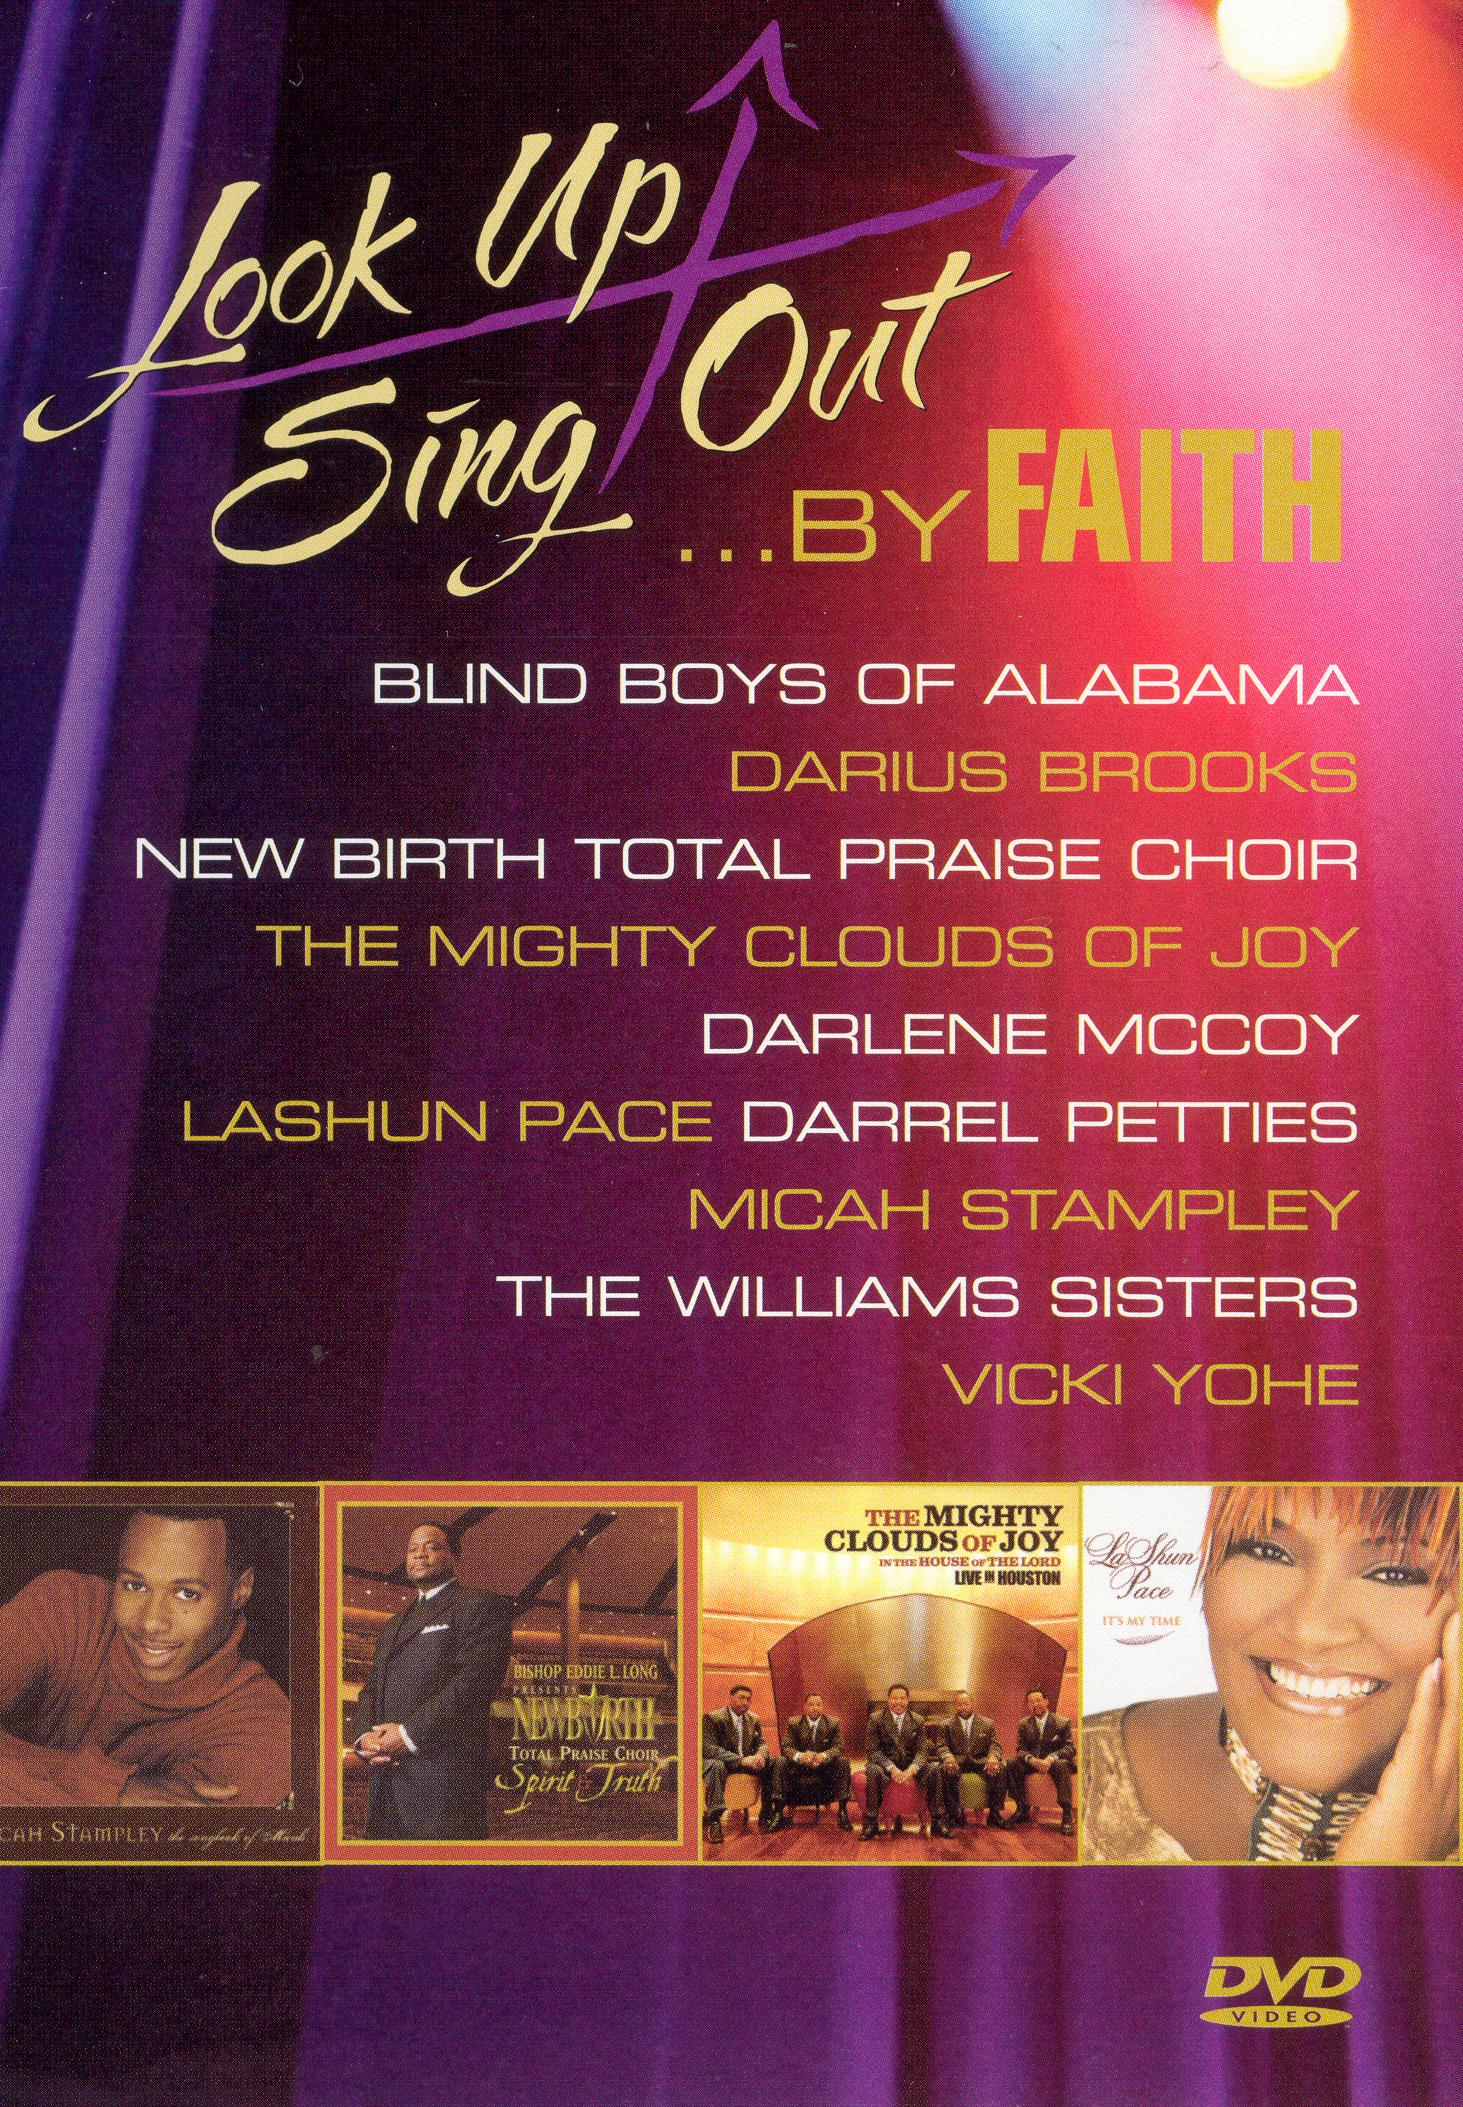 Look Up Sing Out, Vol. 2: By Faith